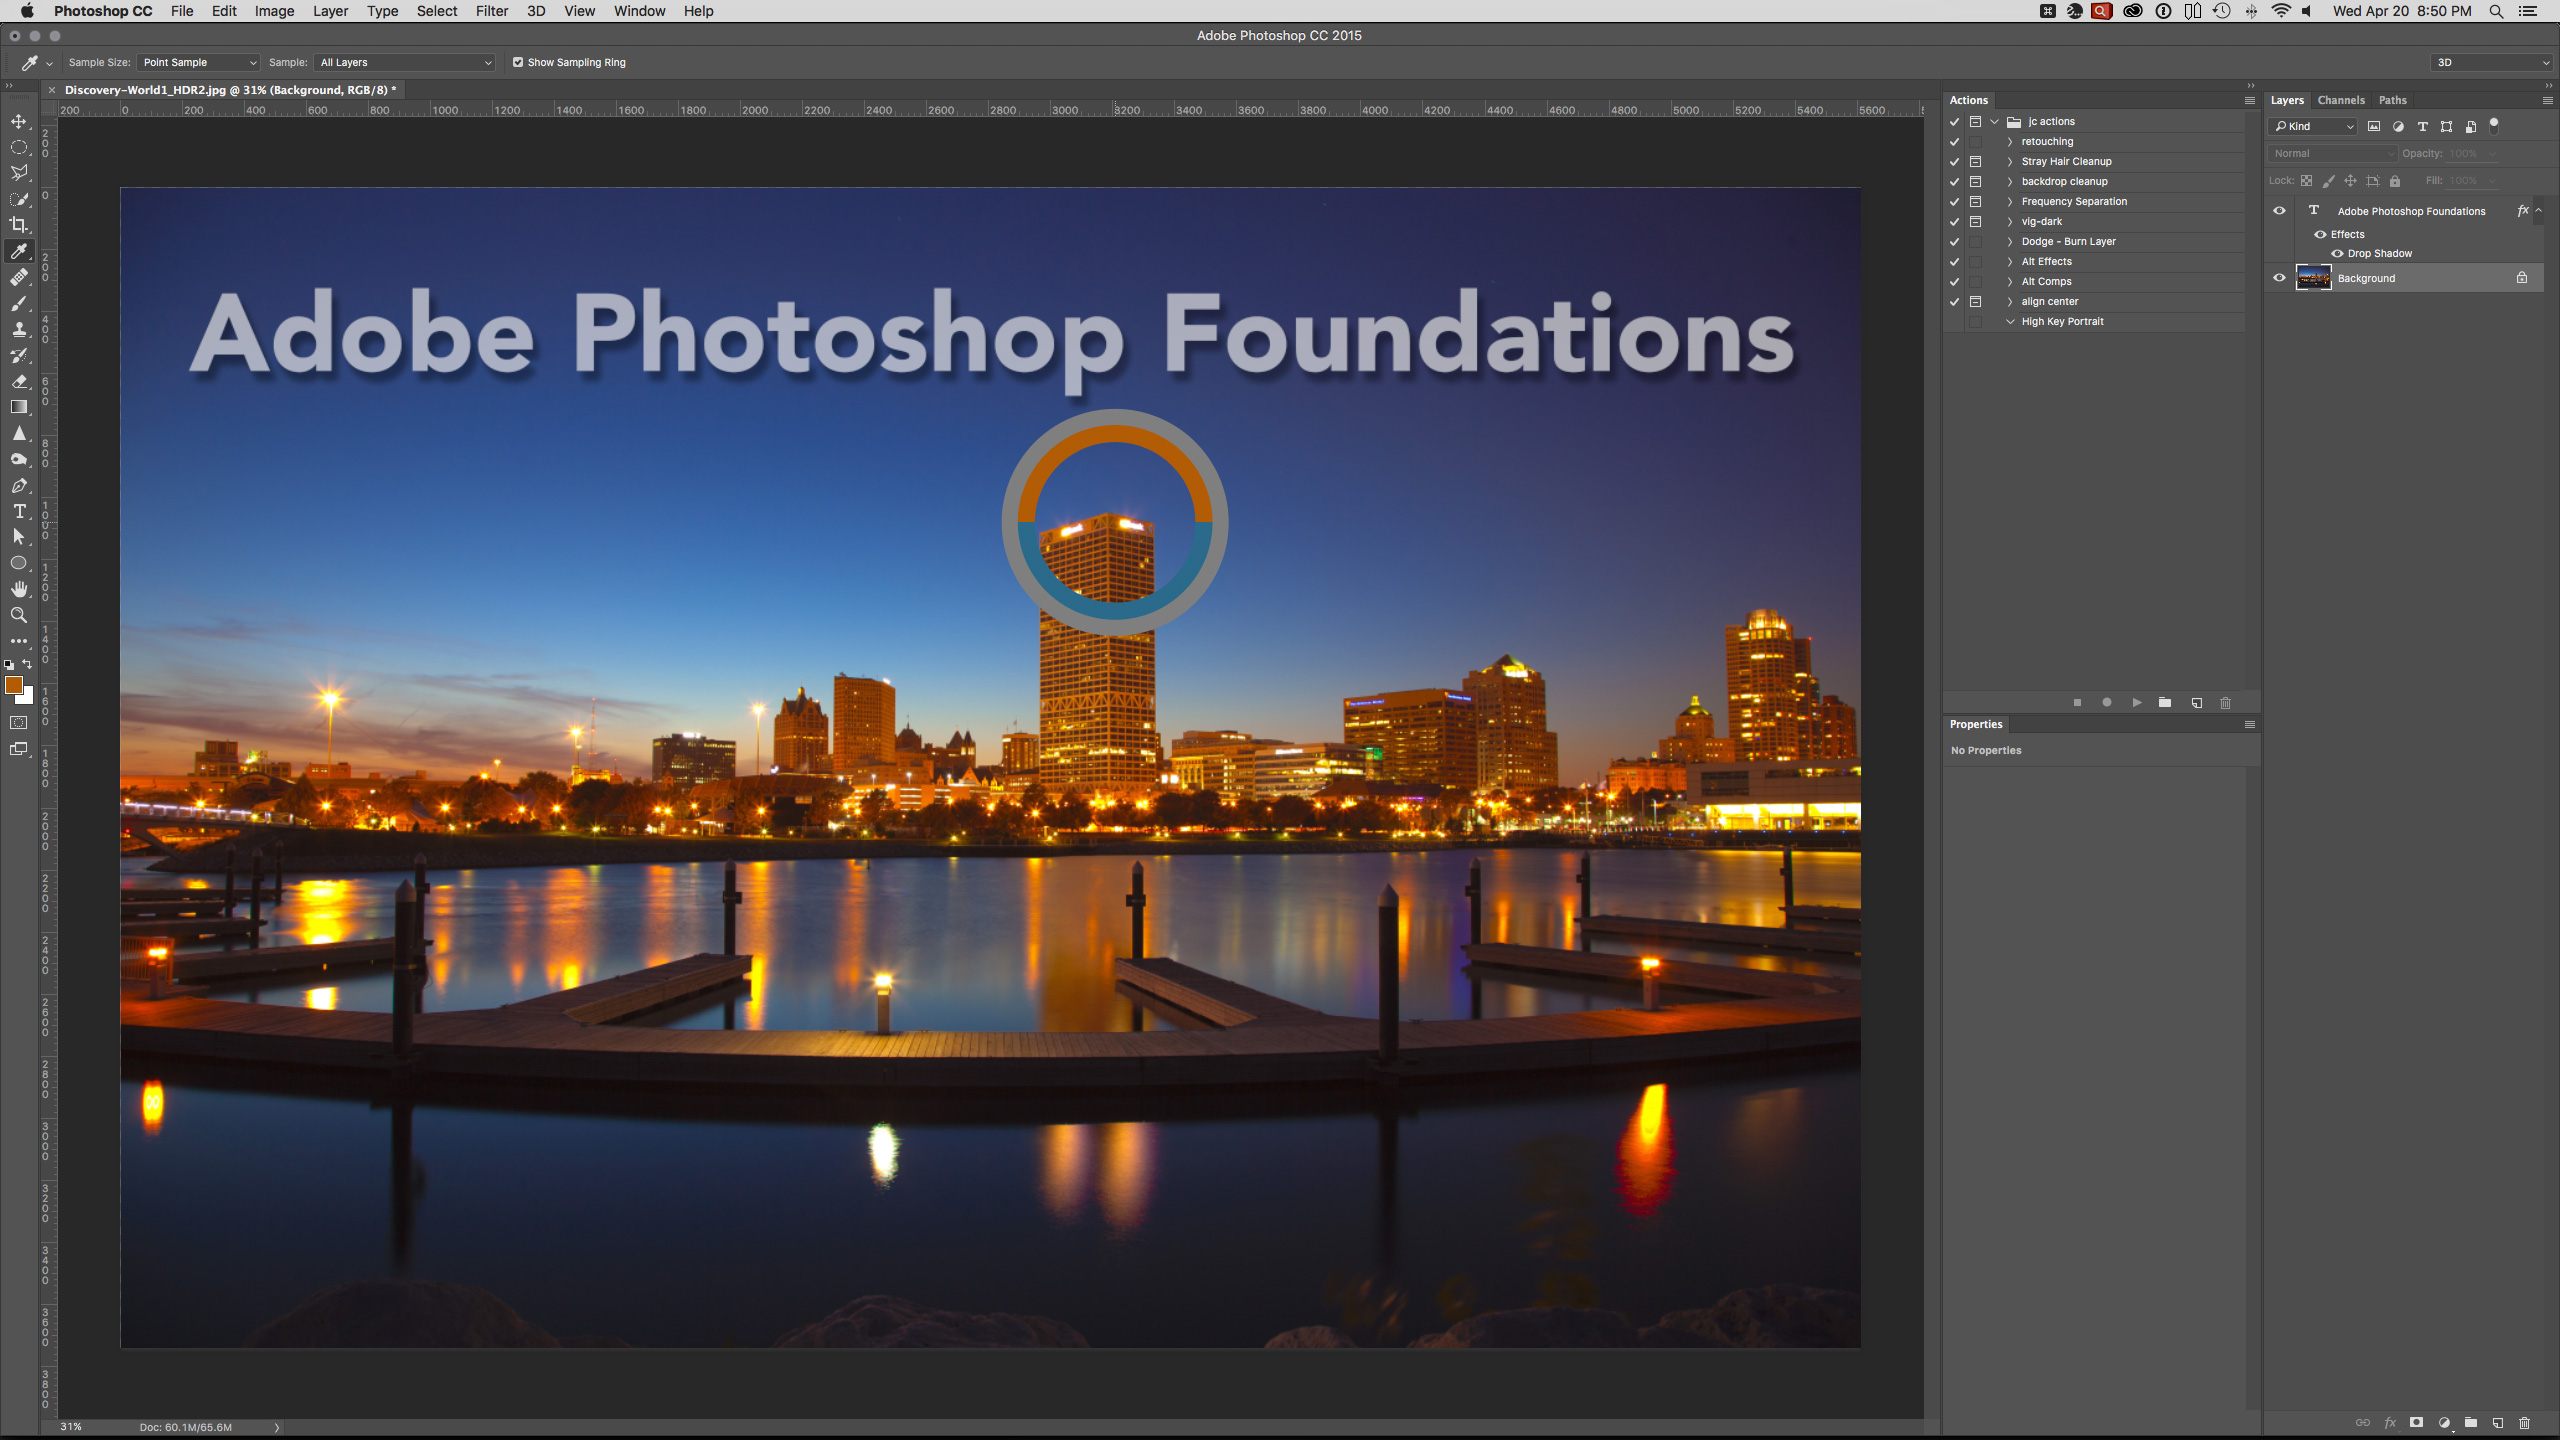 Adobe Photoshop Foundations